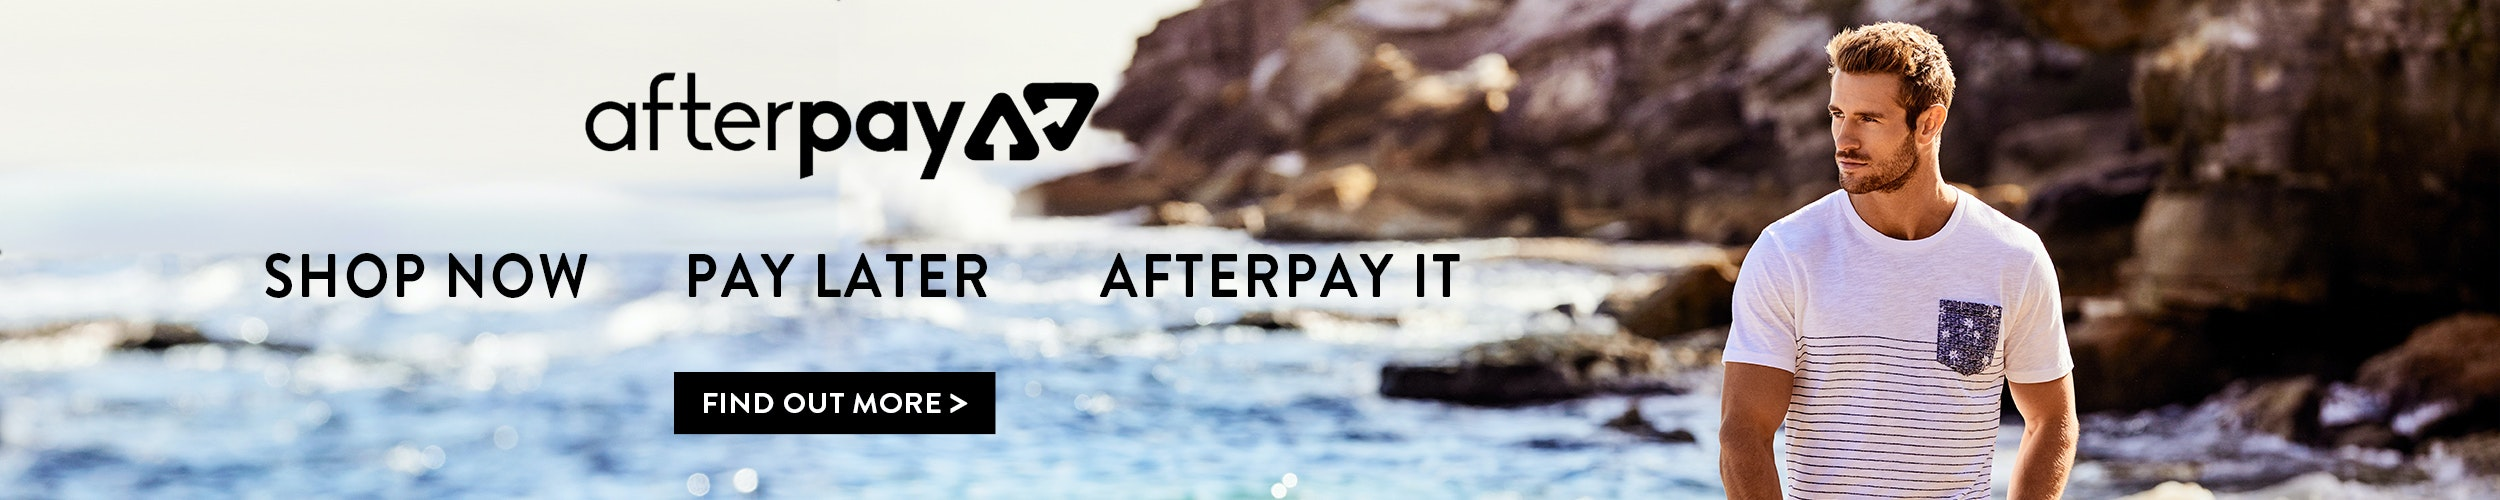 Find out about Afterpay at Tarocash - shop Mens Clothing now, pay later